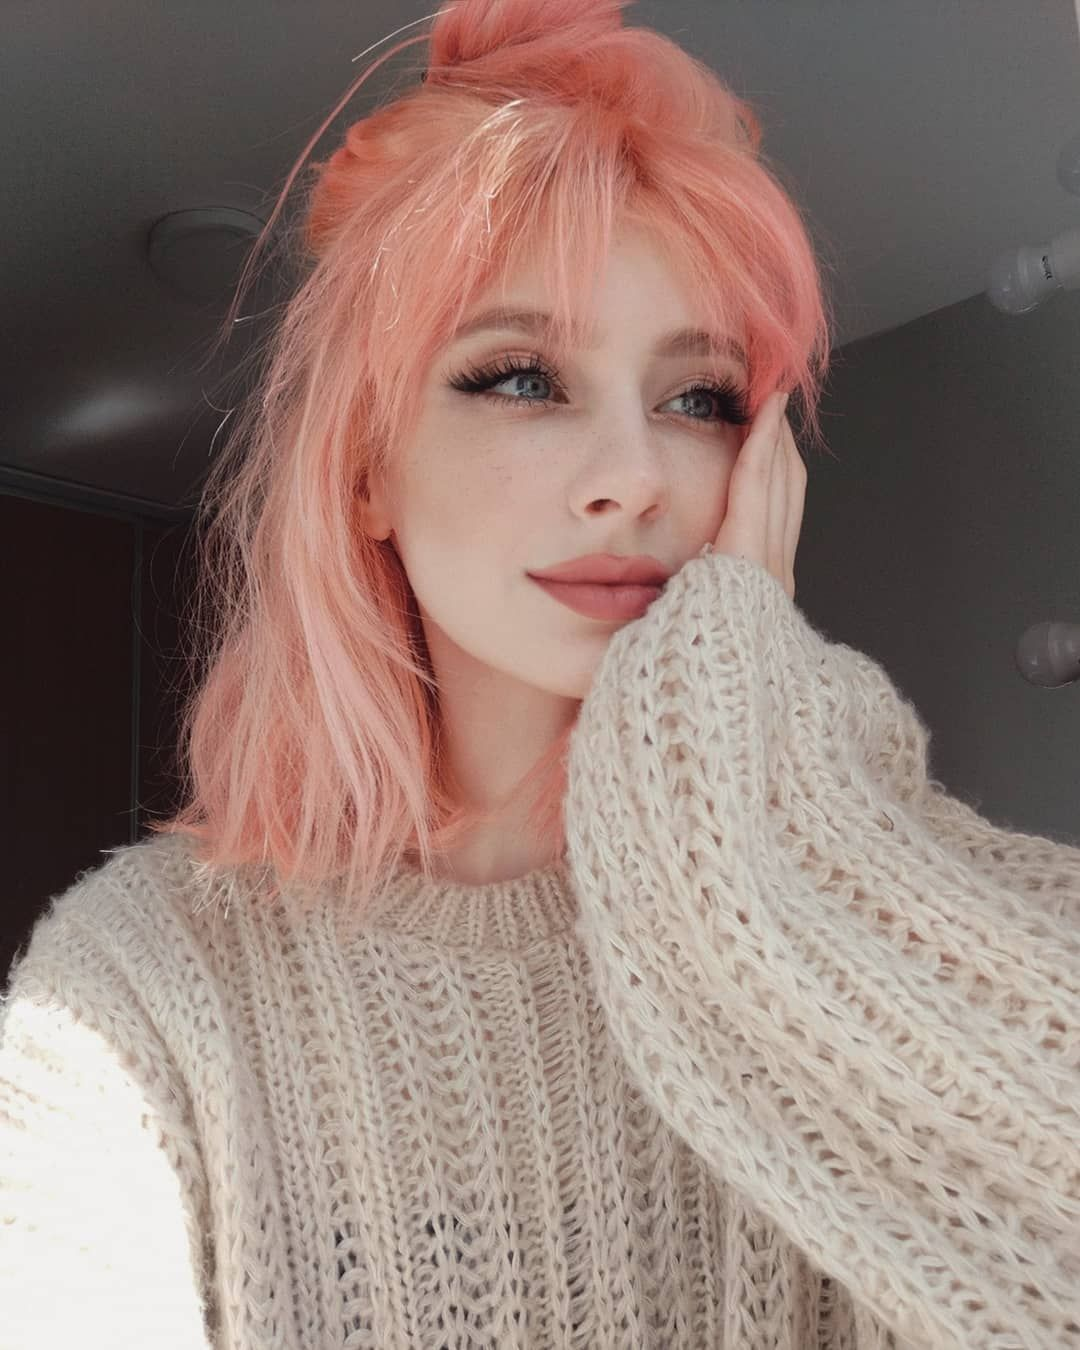 45 Stunning And Awesome Pink Hair Style Page 1 Of 7 In 2020 Peach Hair Hair Styles Cotton Candy Pink Hair